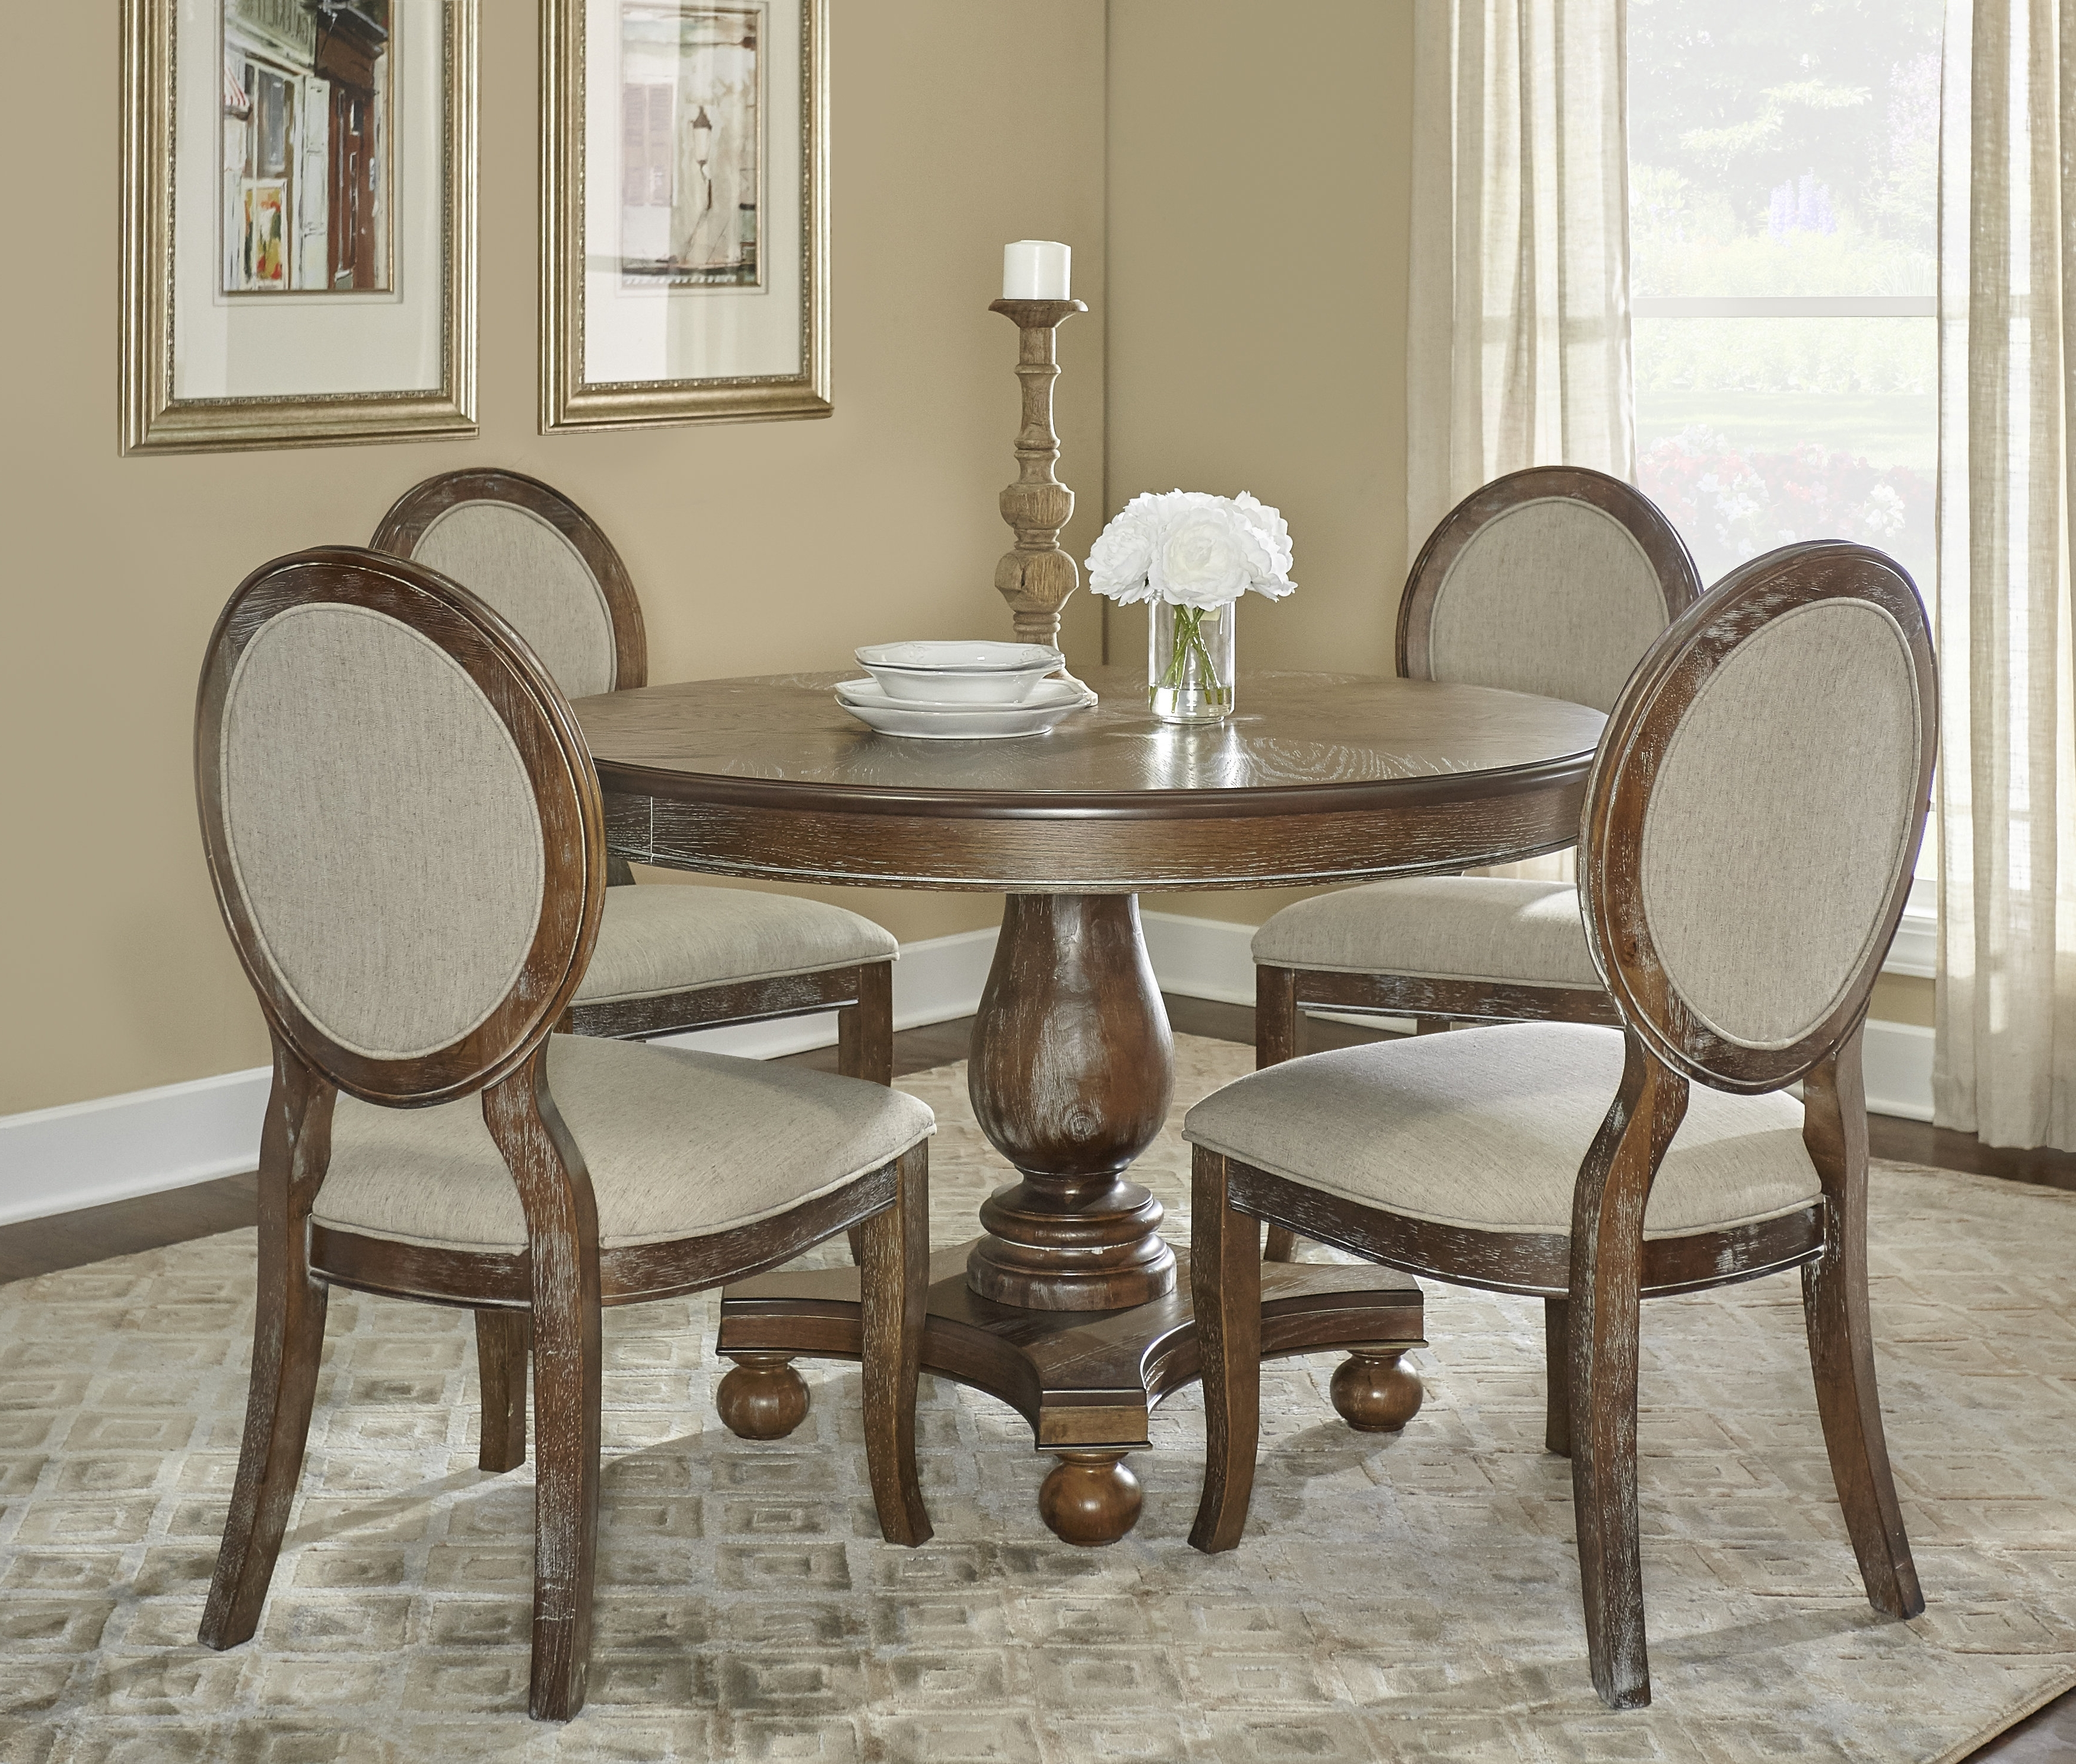 Wayfair Throughout Most Current Caira 7 Piece Rectangular Dining Sets With Upholstered Side Chairs (View 9 of 25)